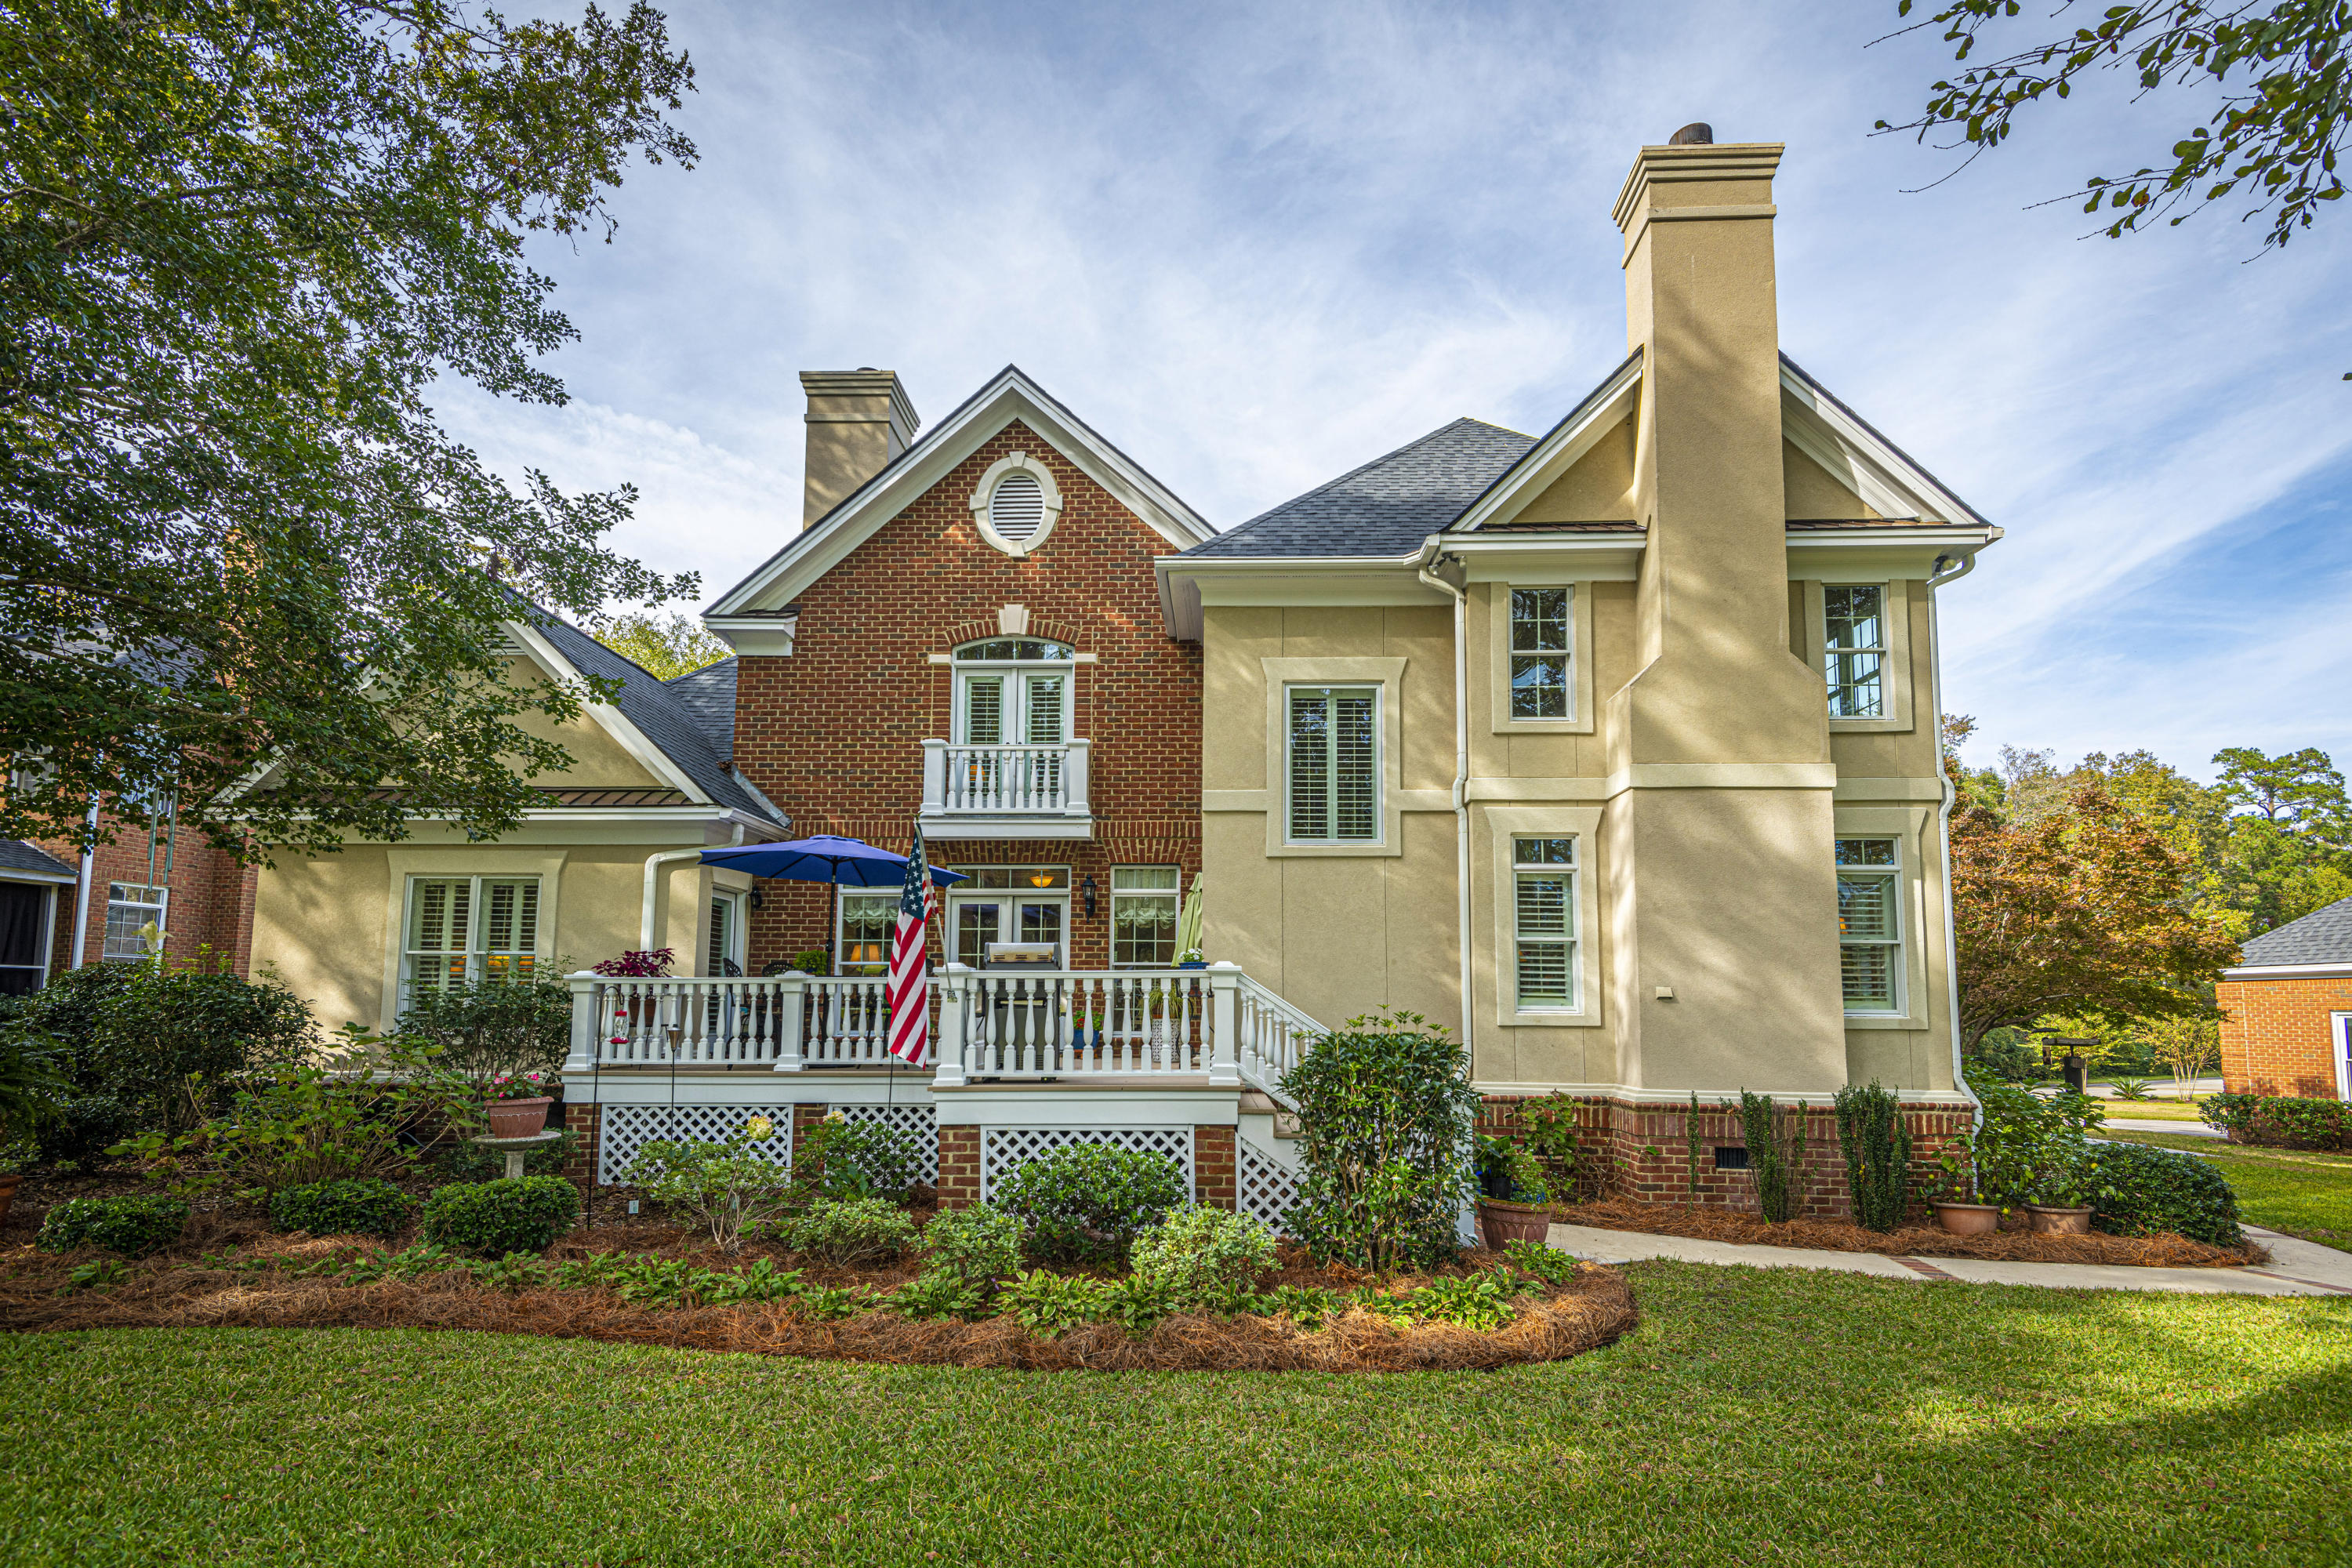 Coosaw Creek Country Club Homes For Sale - 8642 Fairway Woods, North Charleston, SC - 7